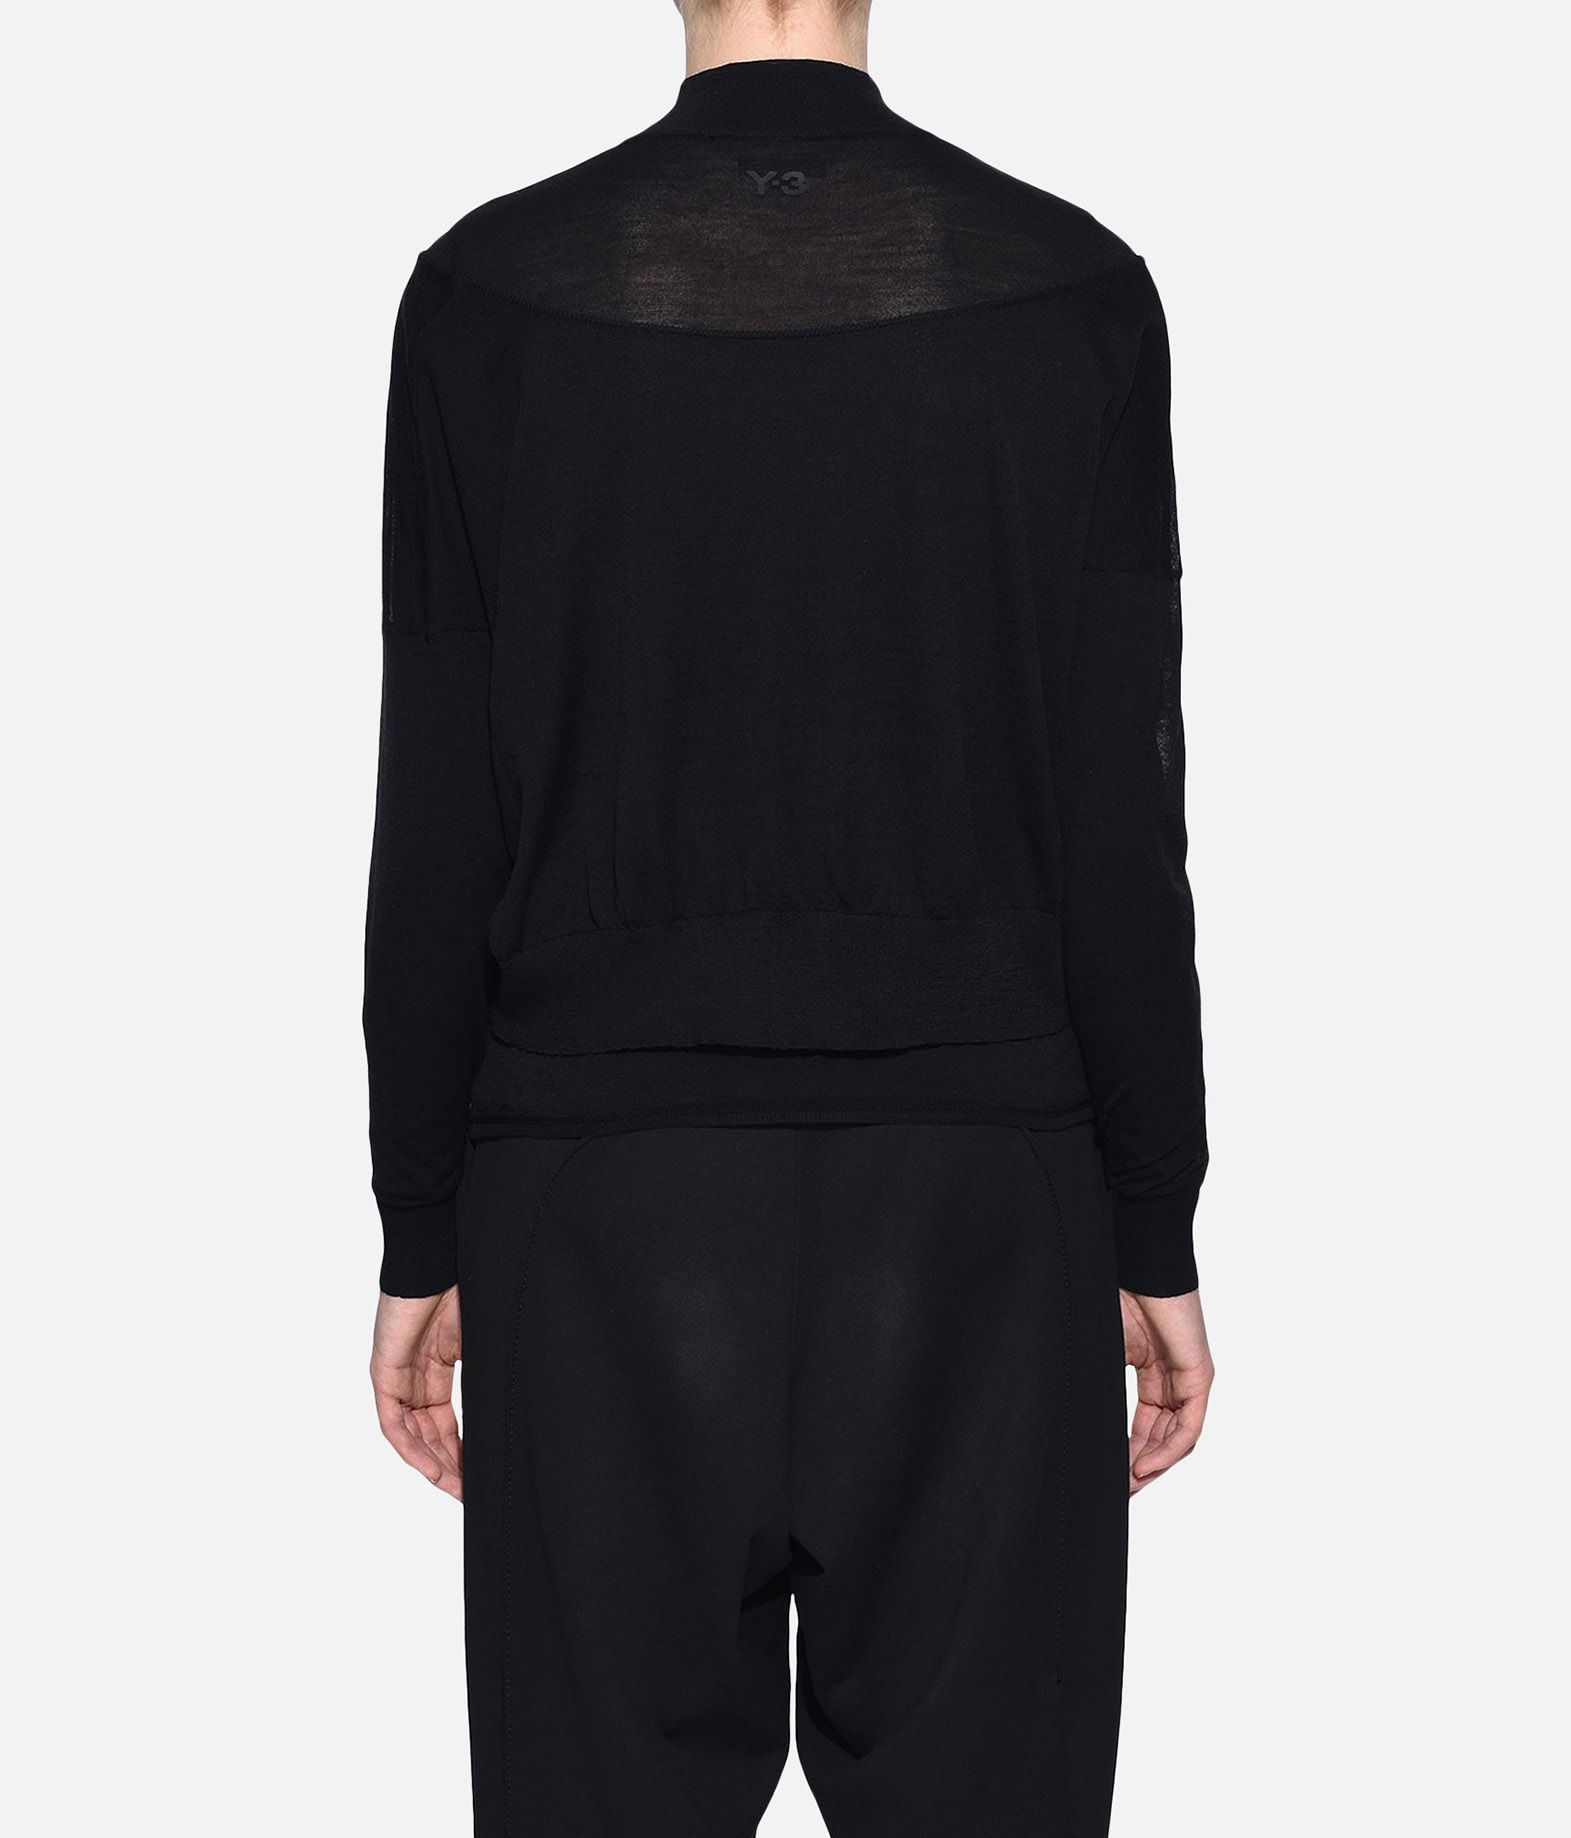 Y-3 Y-3 Layered Knitted Cropped Sweater Long sleeve jumper Woman d